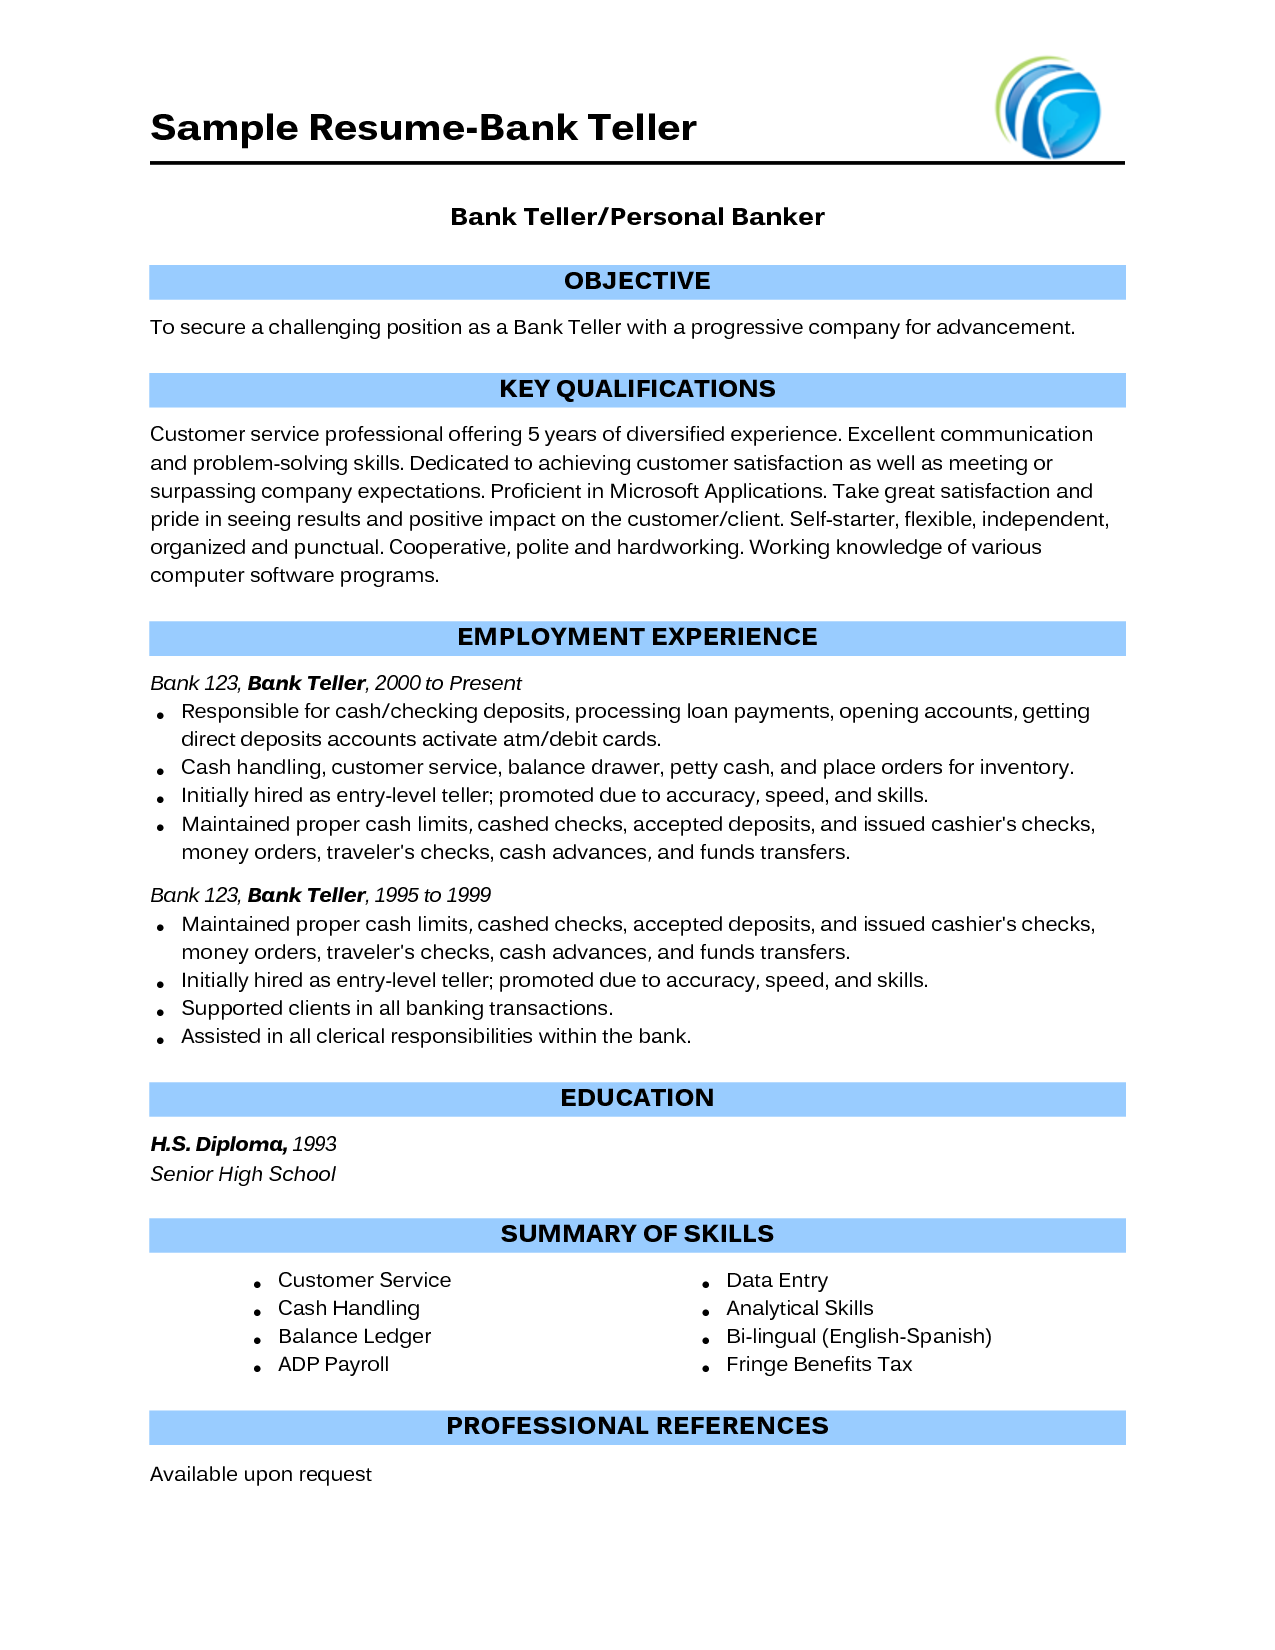 Sample Of Bank Teller Resume With No Experience http